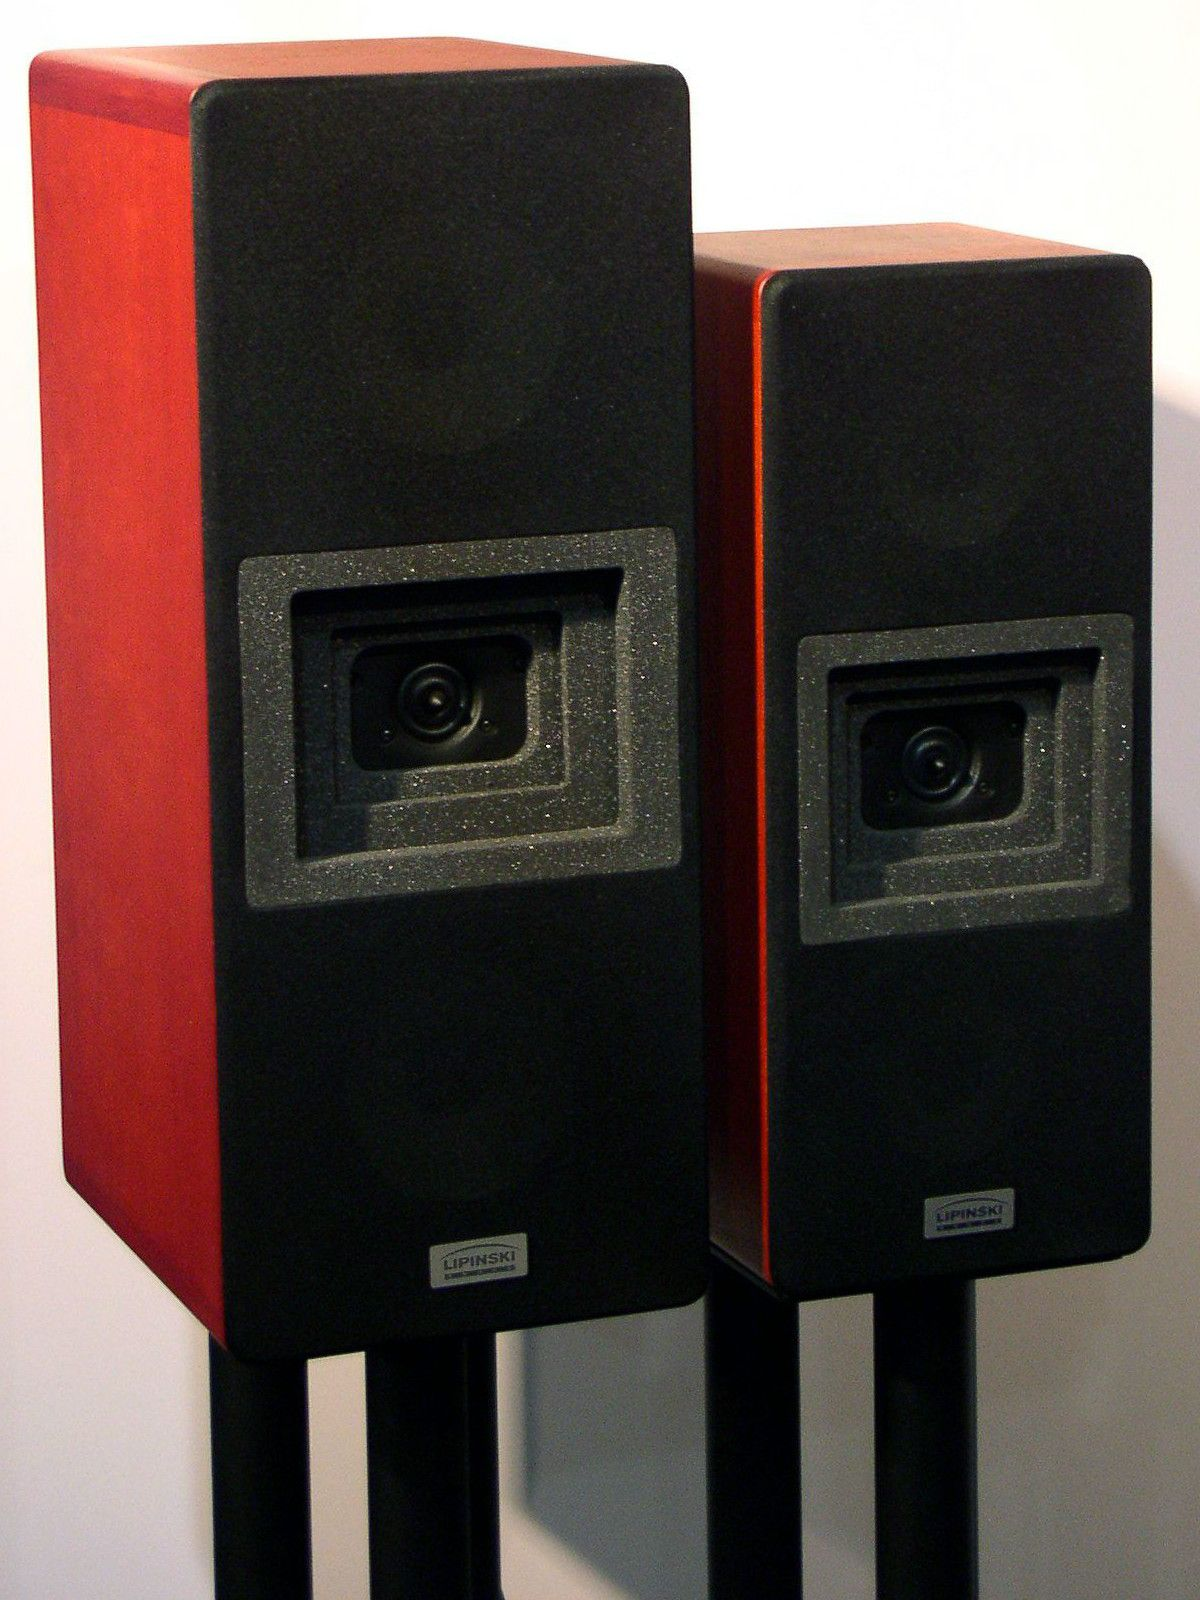 awesome computer speakers. lipinski speakers on stands awesome computer